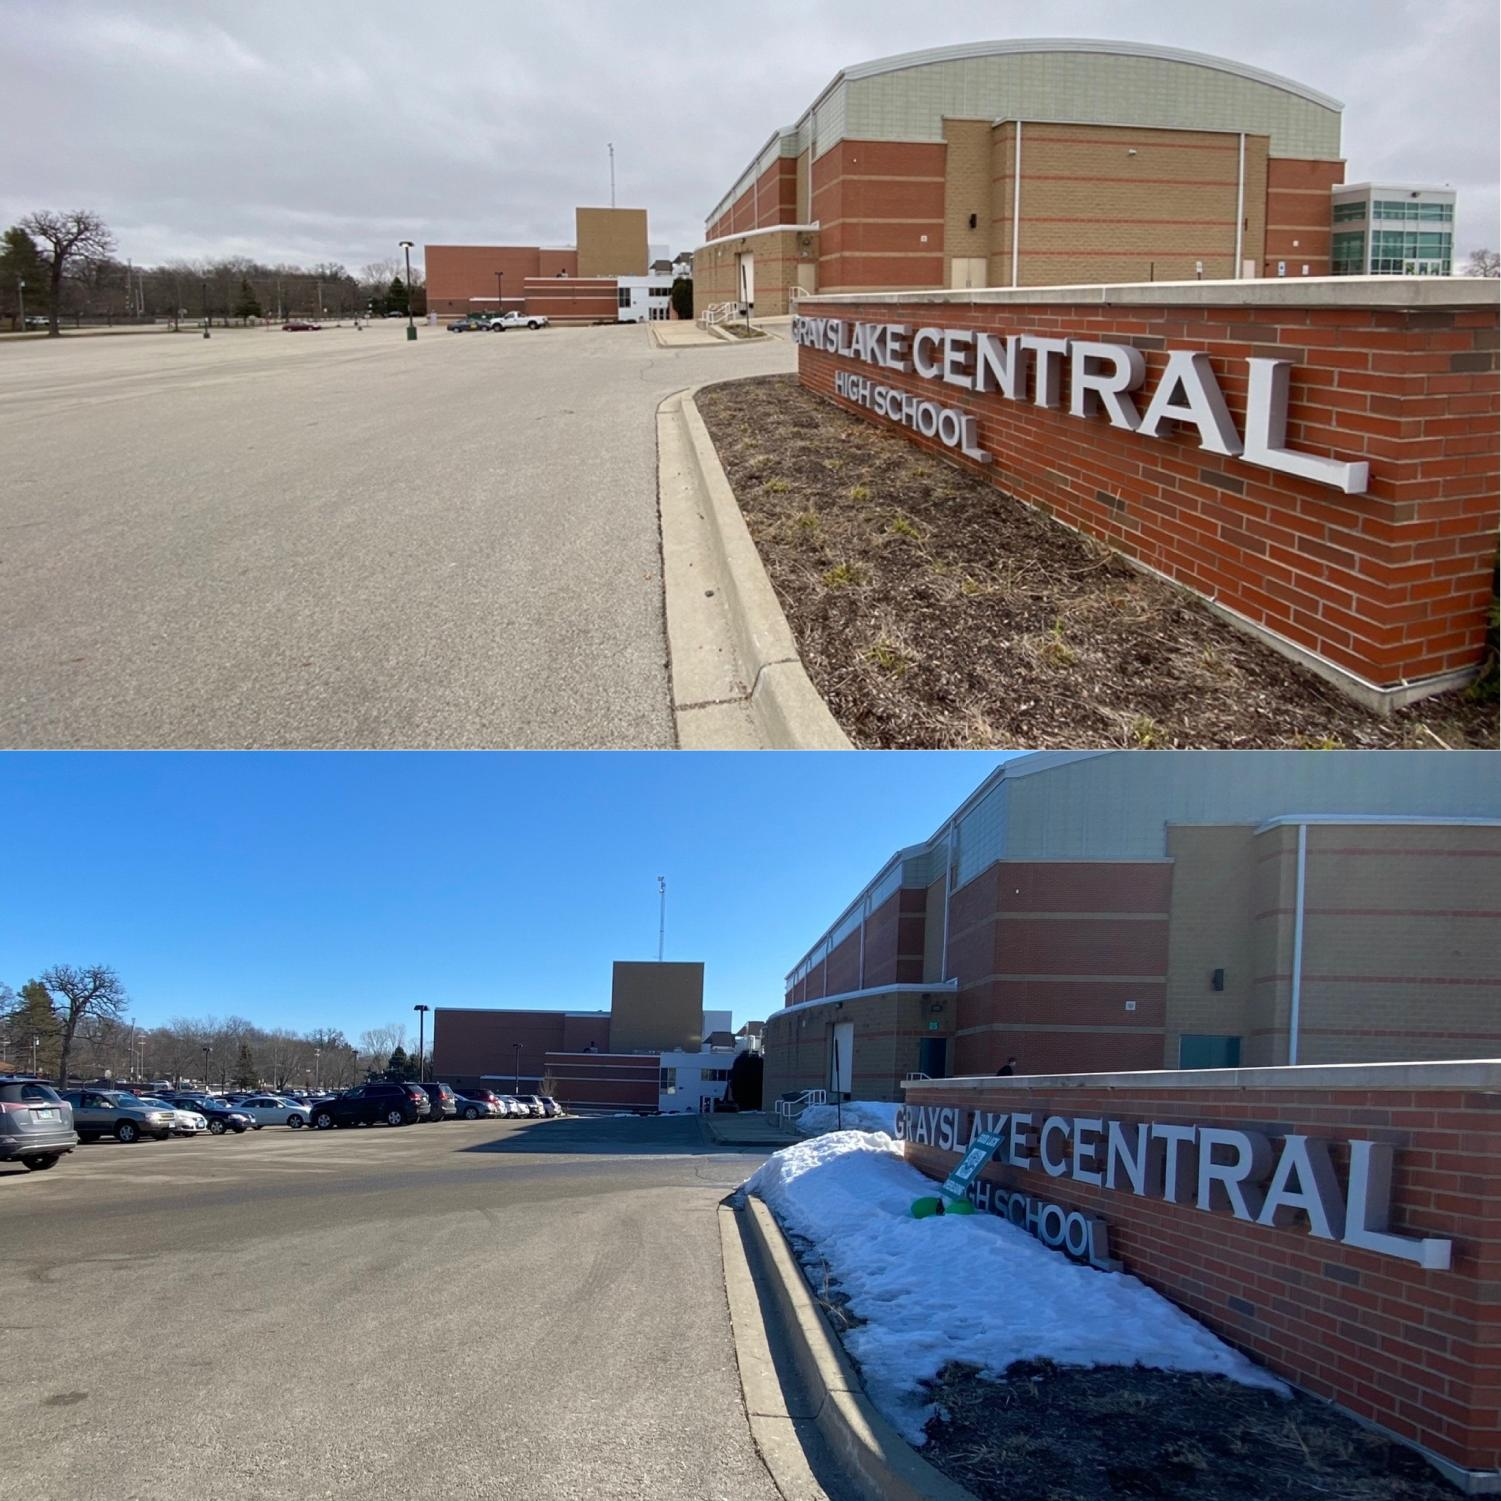 On Mar. 31, 2020, Grayslake Central